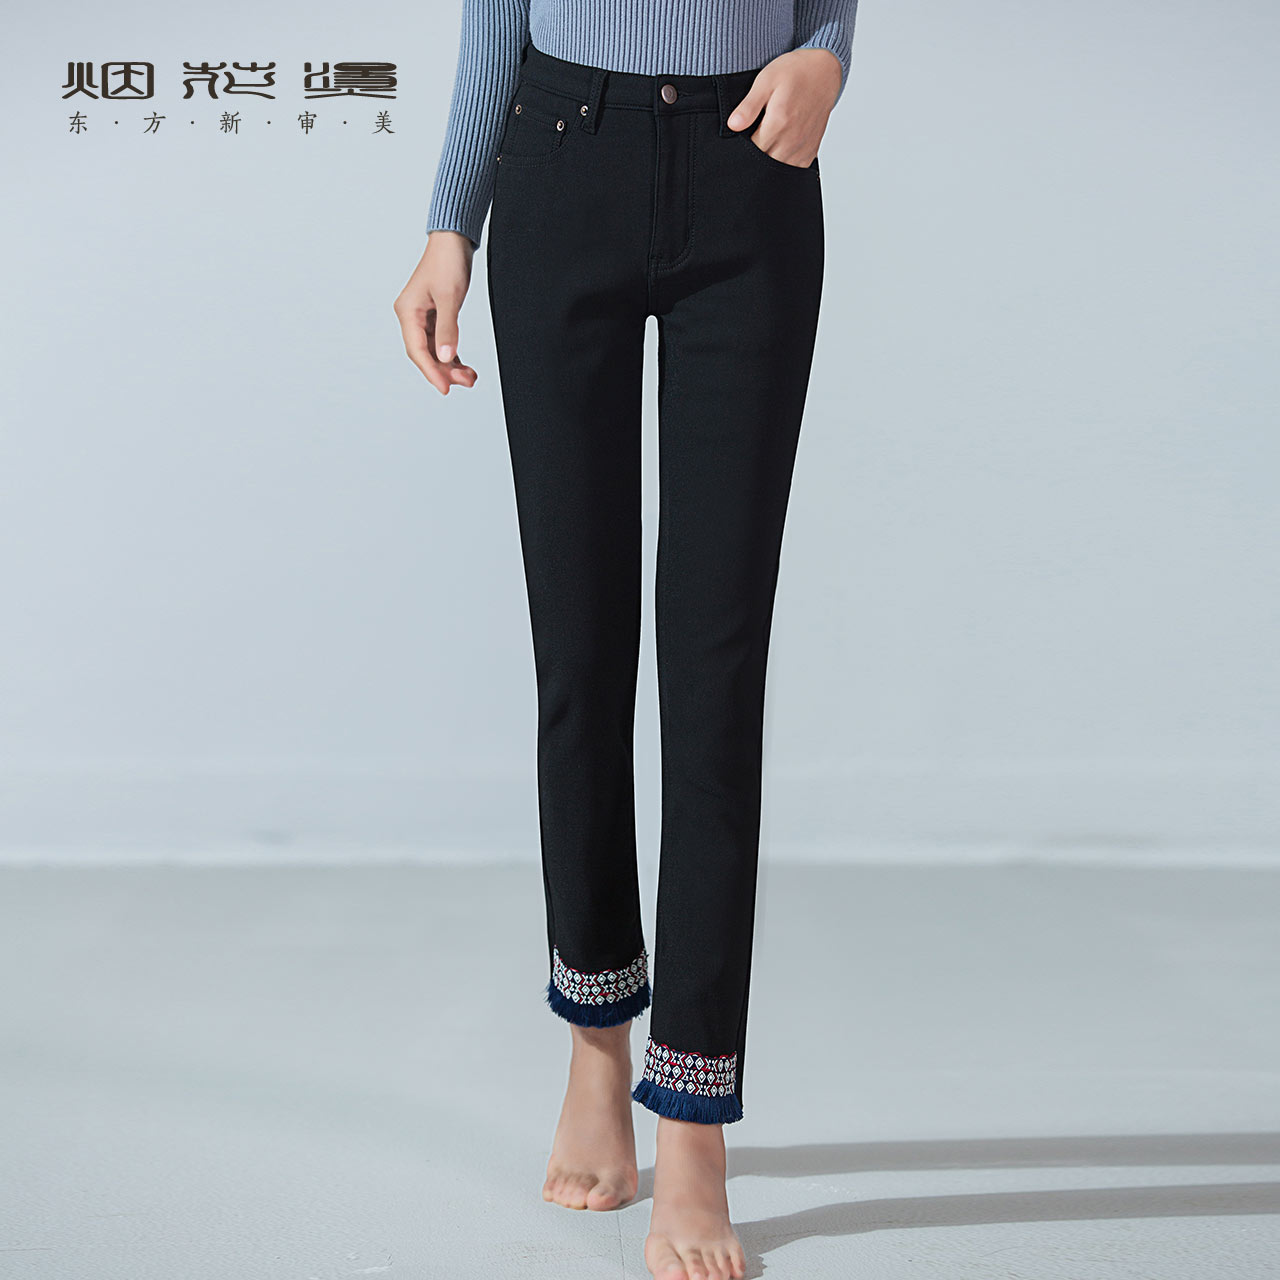 Fireworks hot spring female 2019 new pants feet pants retro temperament tassels plus cashmere jeans man line